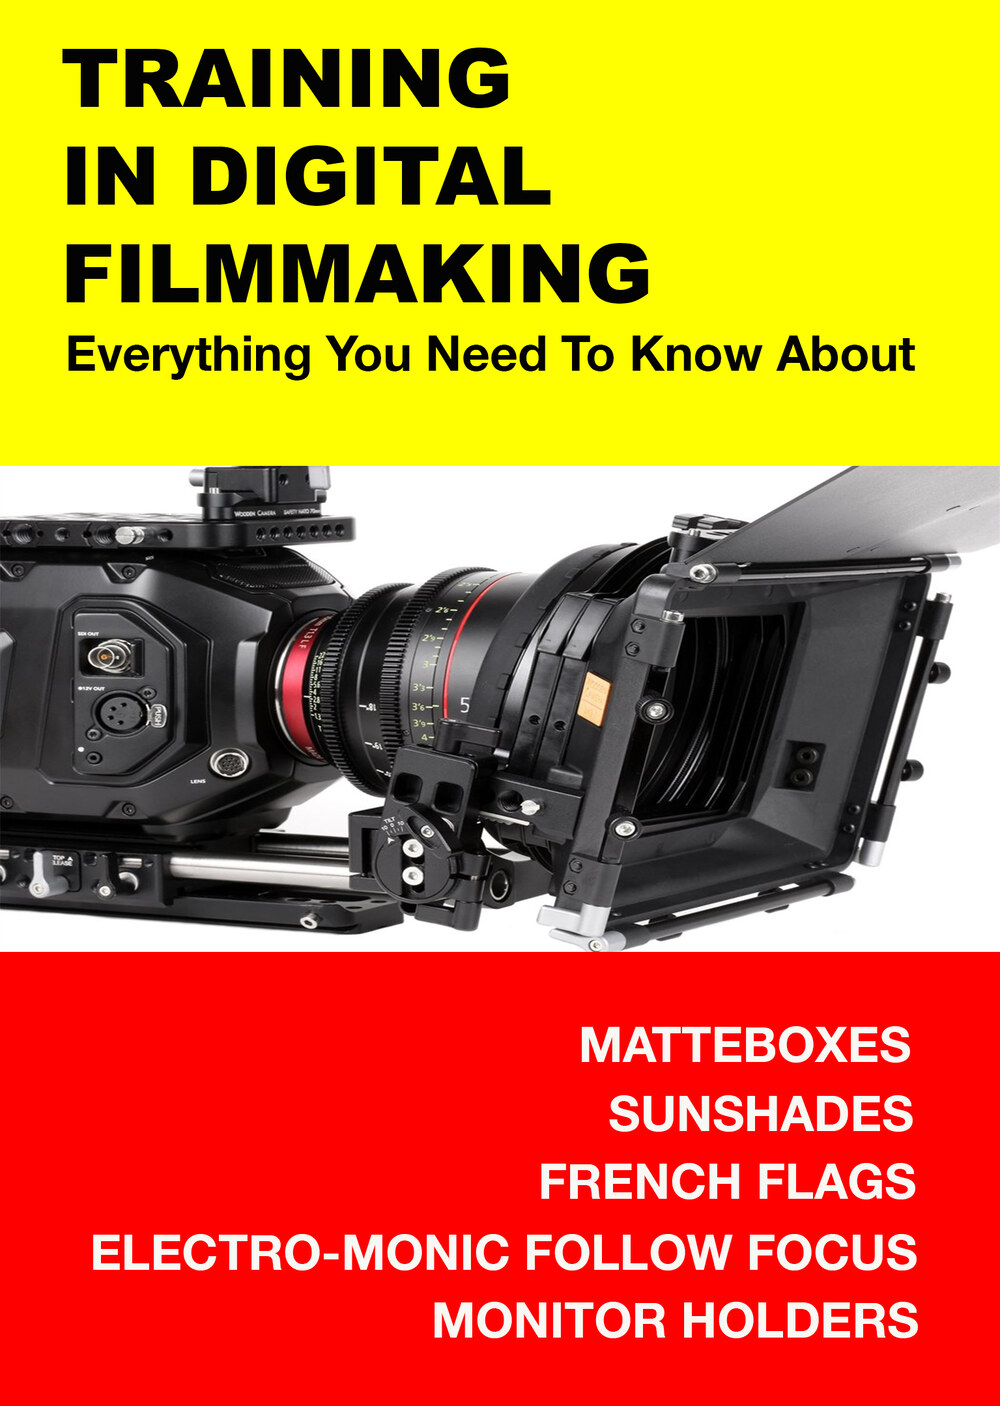 F3000 - Everything You Need to Know About Matteboxes, Sunshades, French Flags, Electro-Monic Follow Focus & Monitor Holders